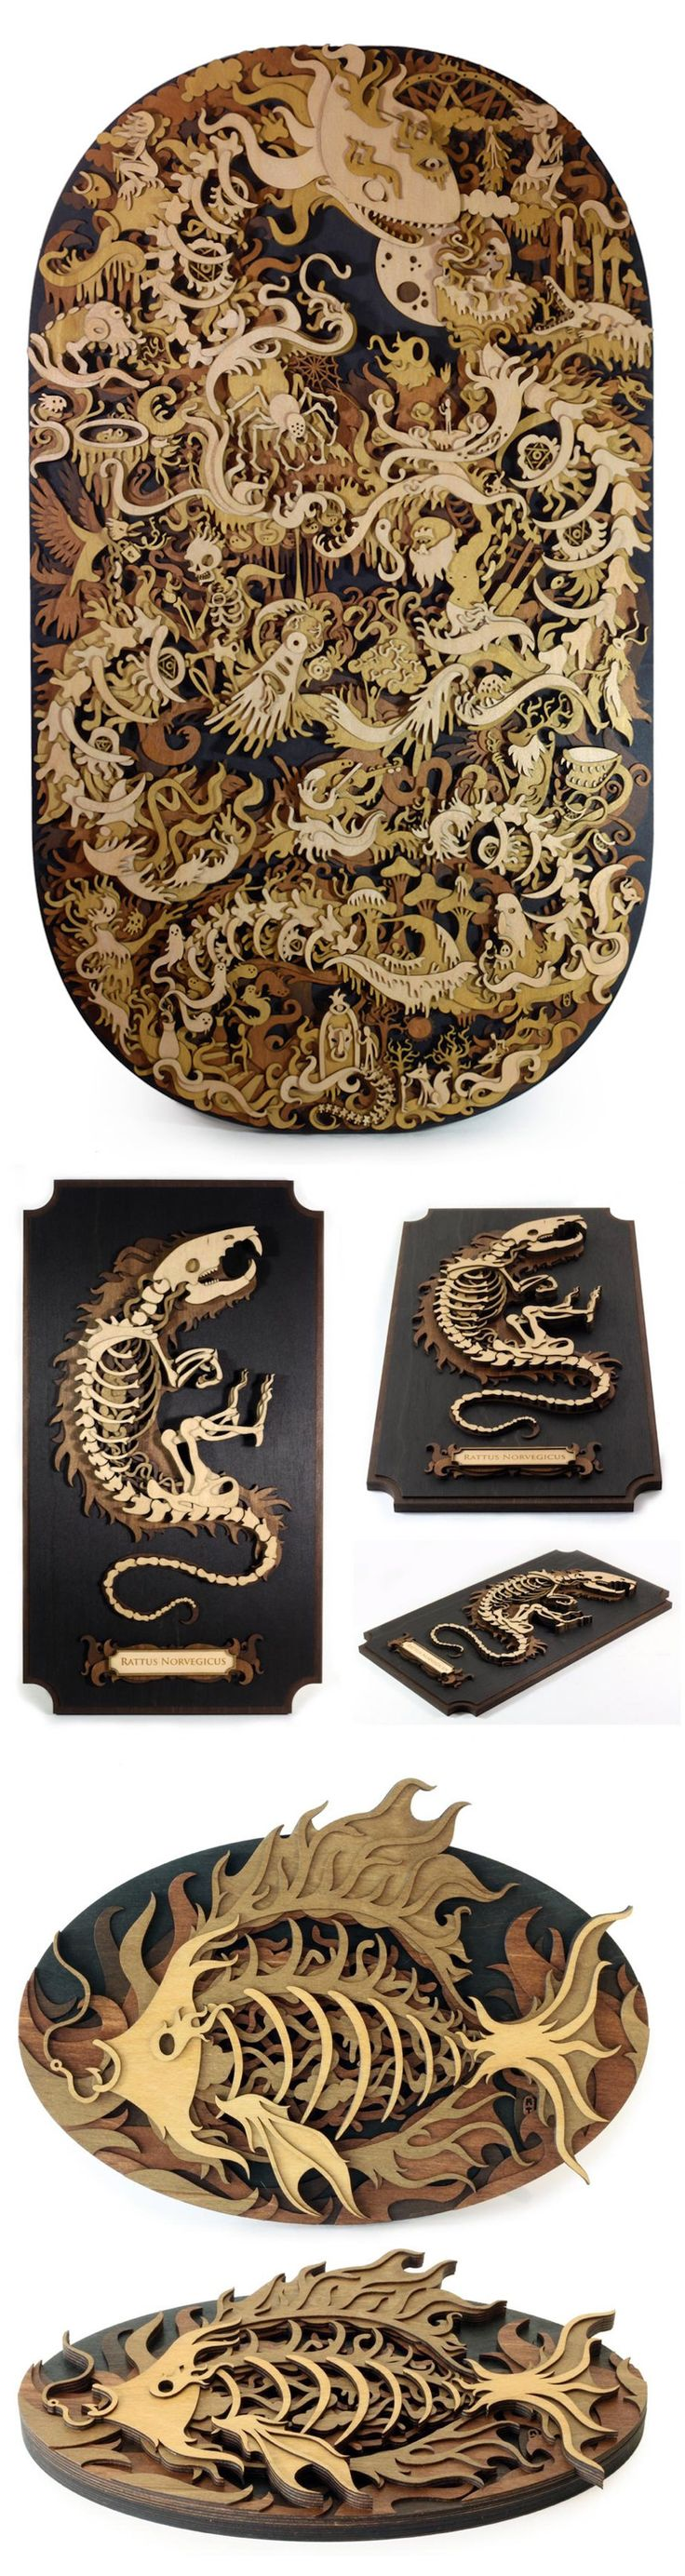 New Laser-Cut Wood Illustrations by Martin Tomsky